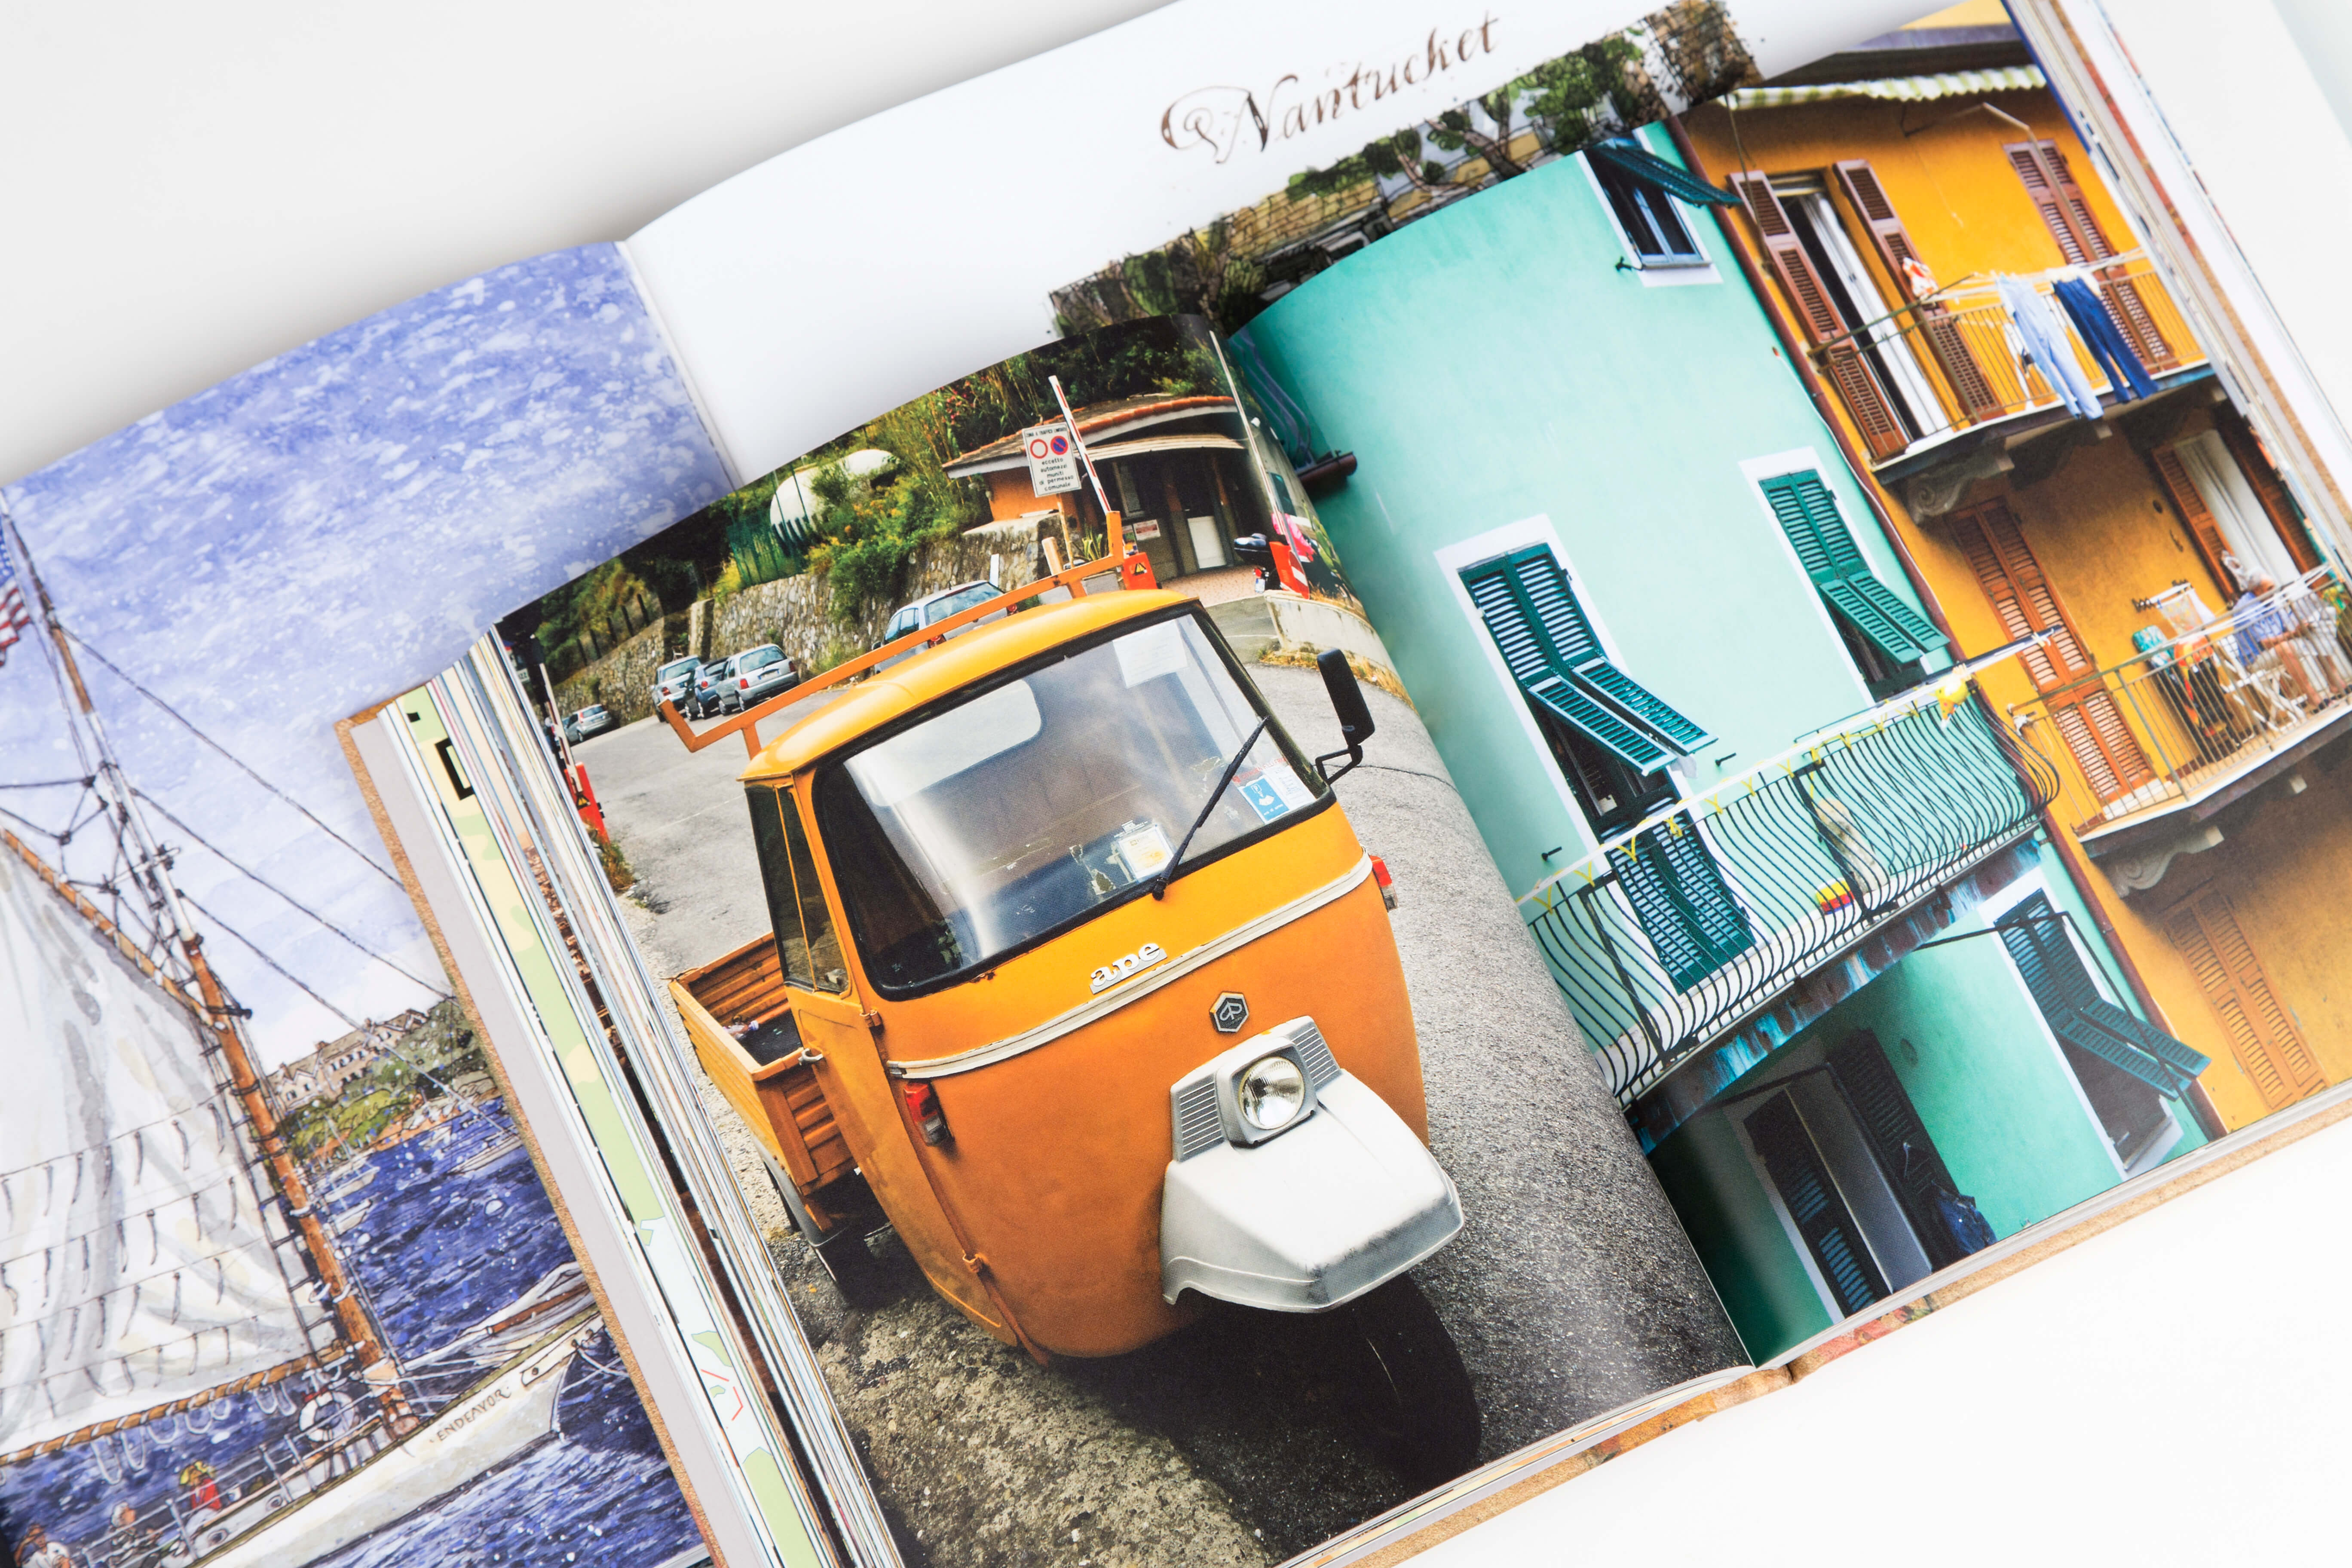 Five Tips to Publish a Great Summer Photo Book Using Adobe Photoshop Lightroom